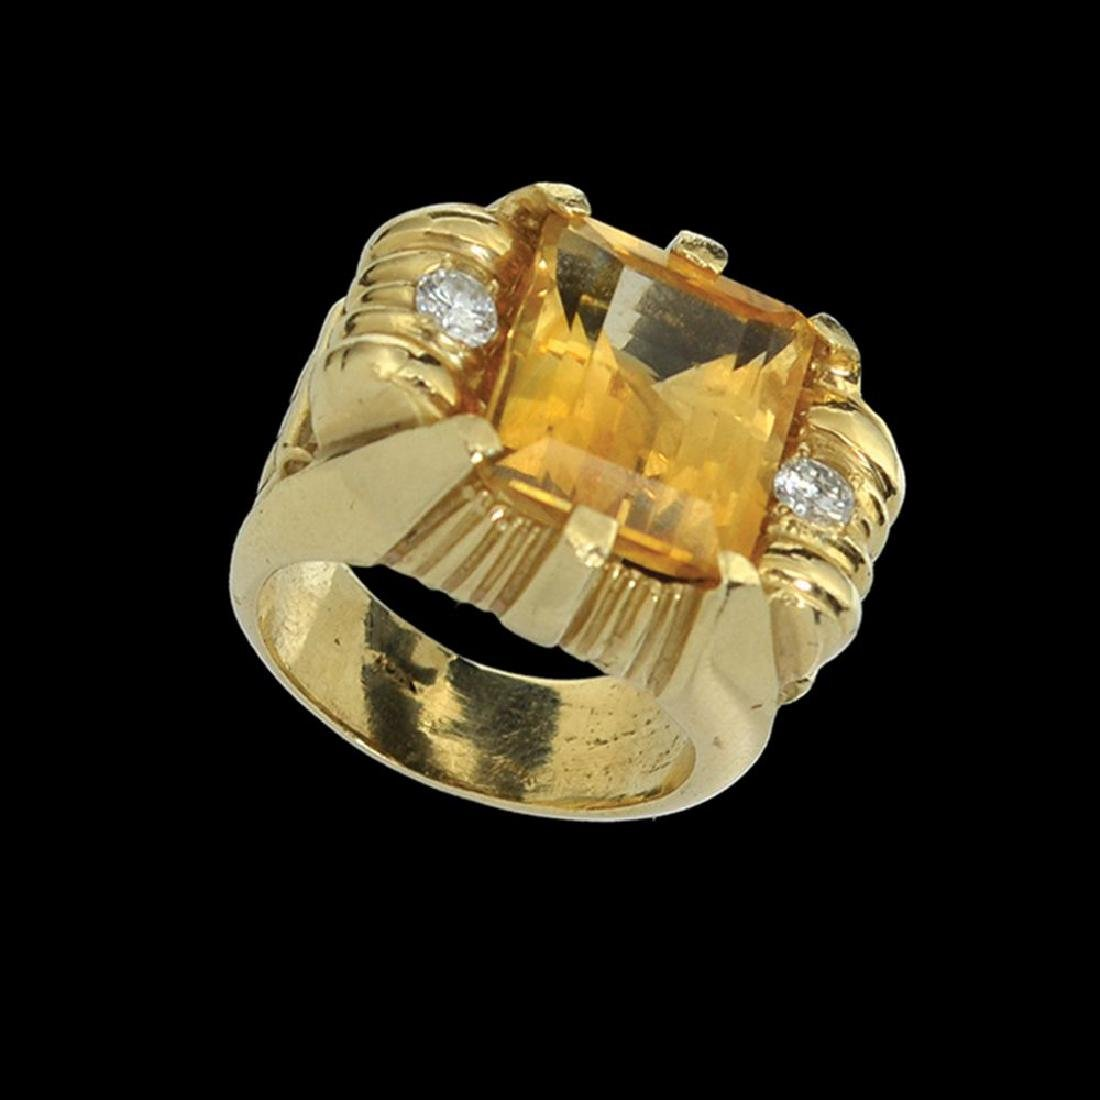 A 14K GOLD RETRO RING